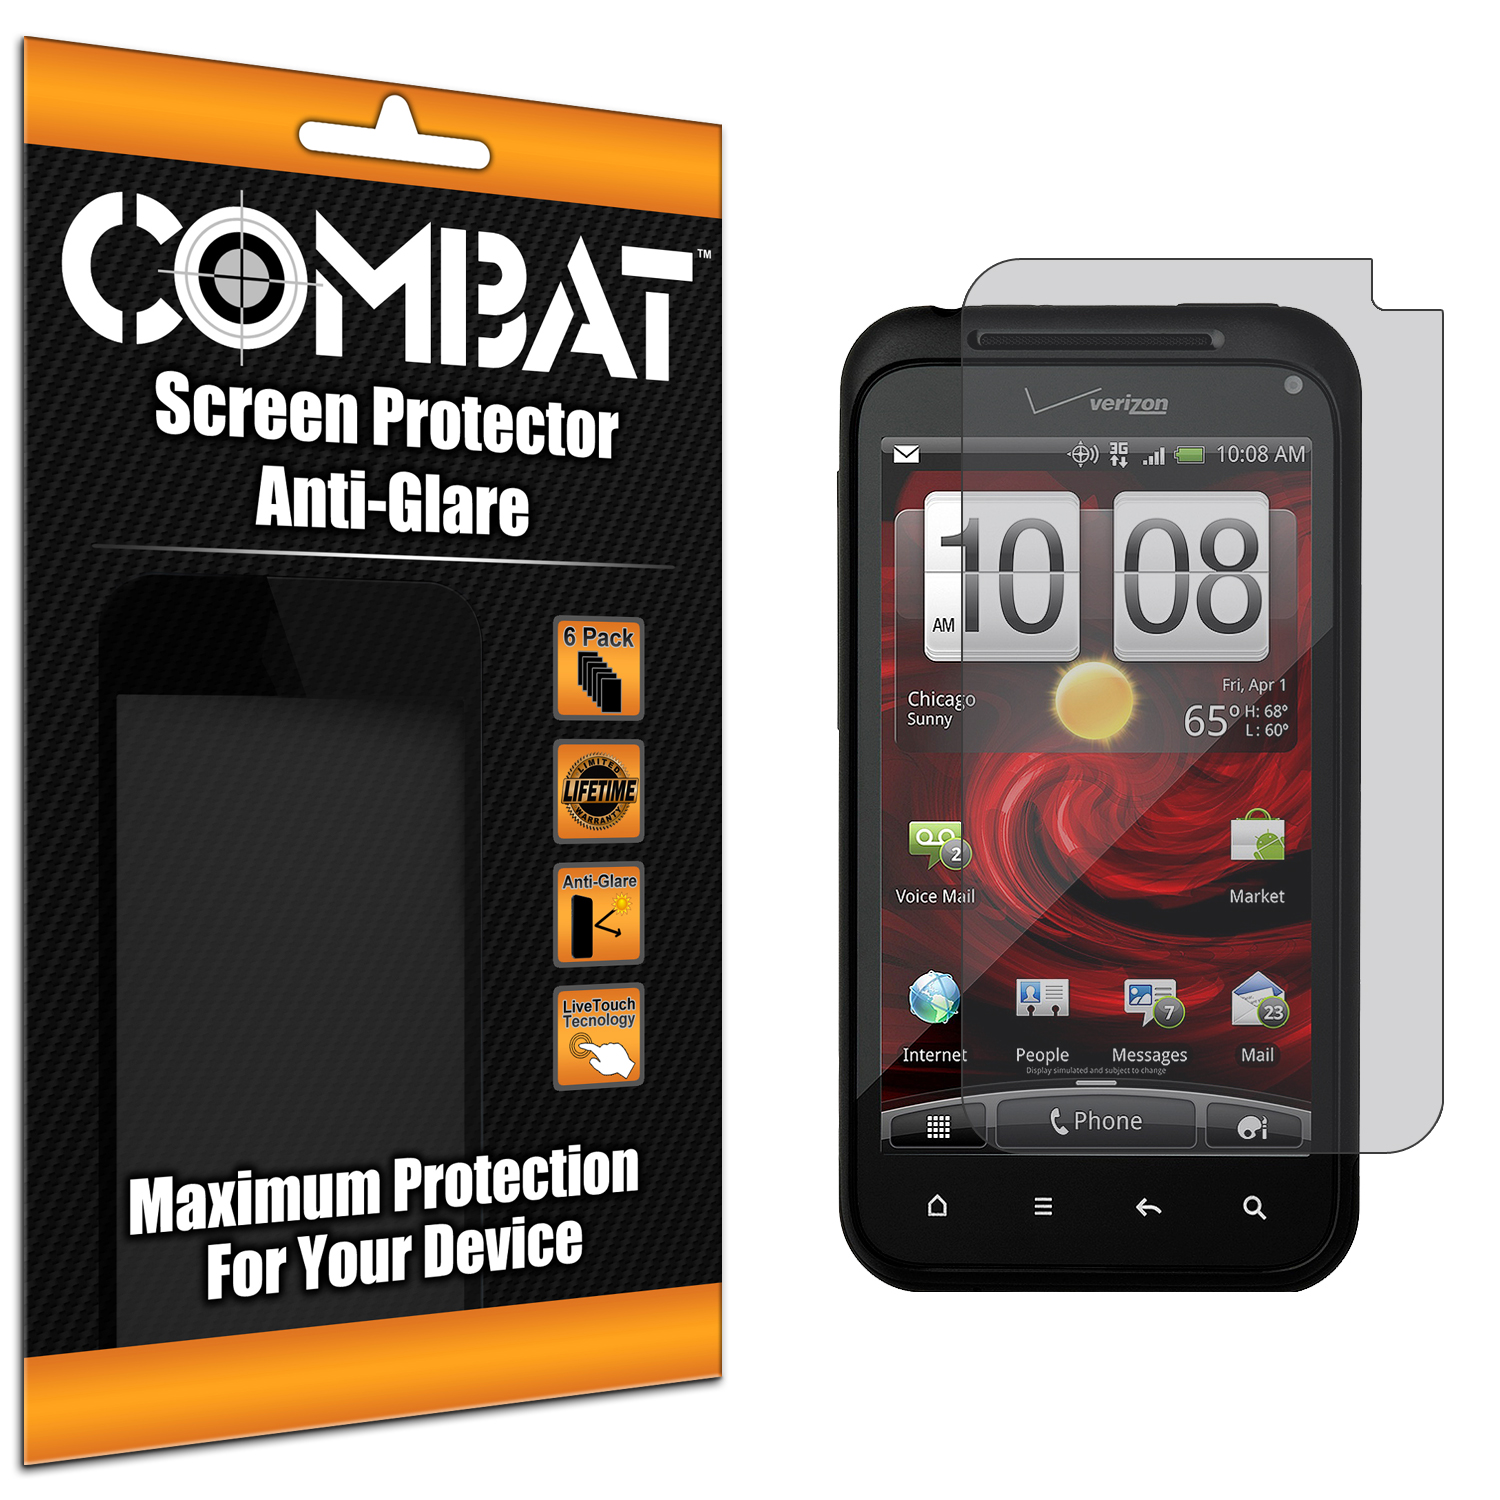 HTC Droid Incredible 2 6350 Combat 6 Pack Anti-Glare Matte Screen Protector